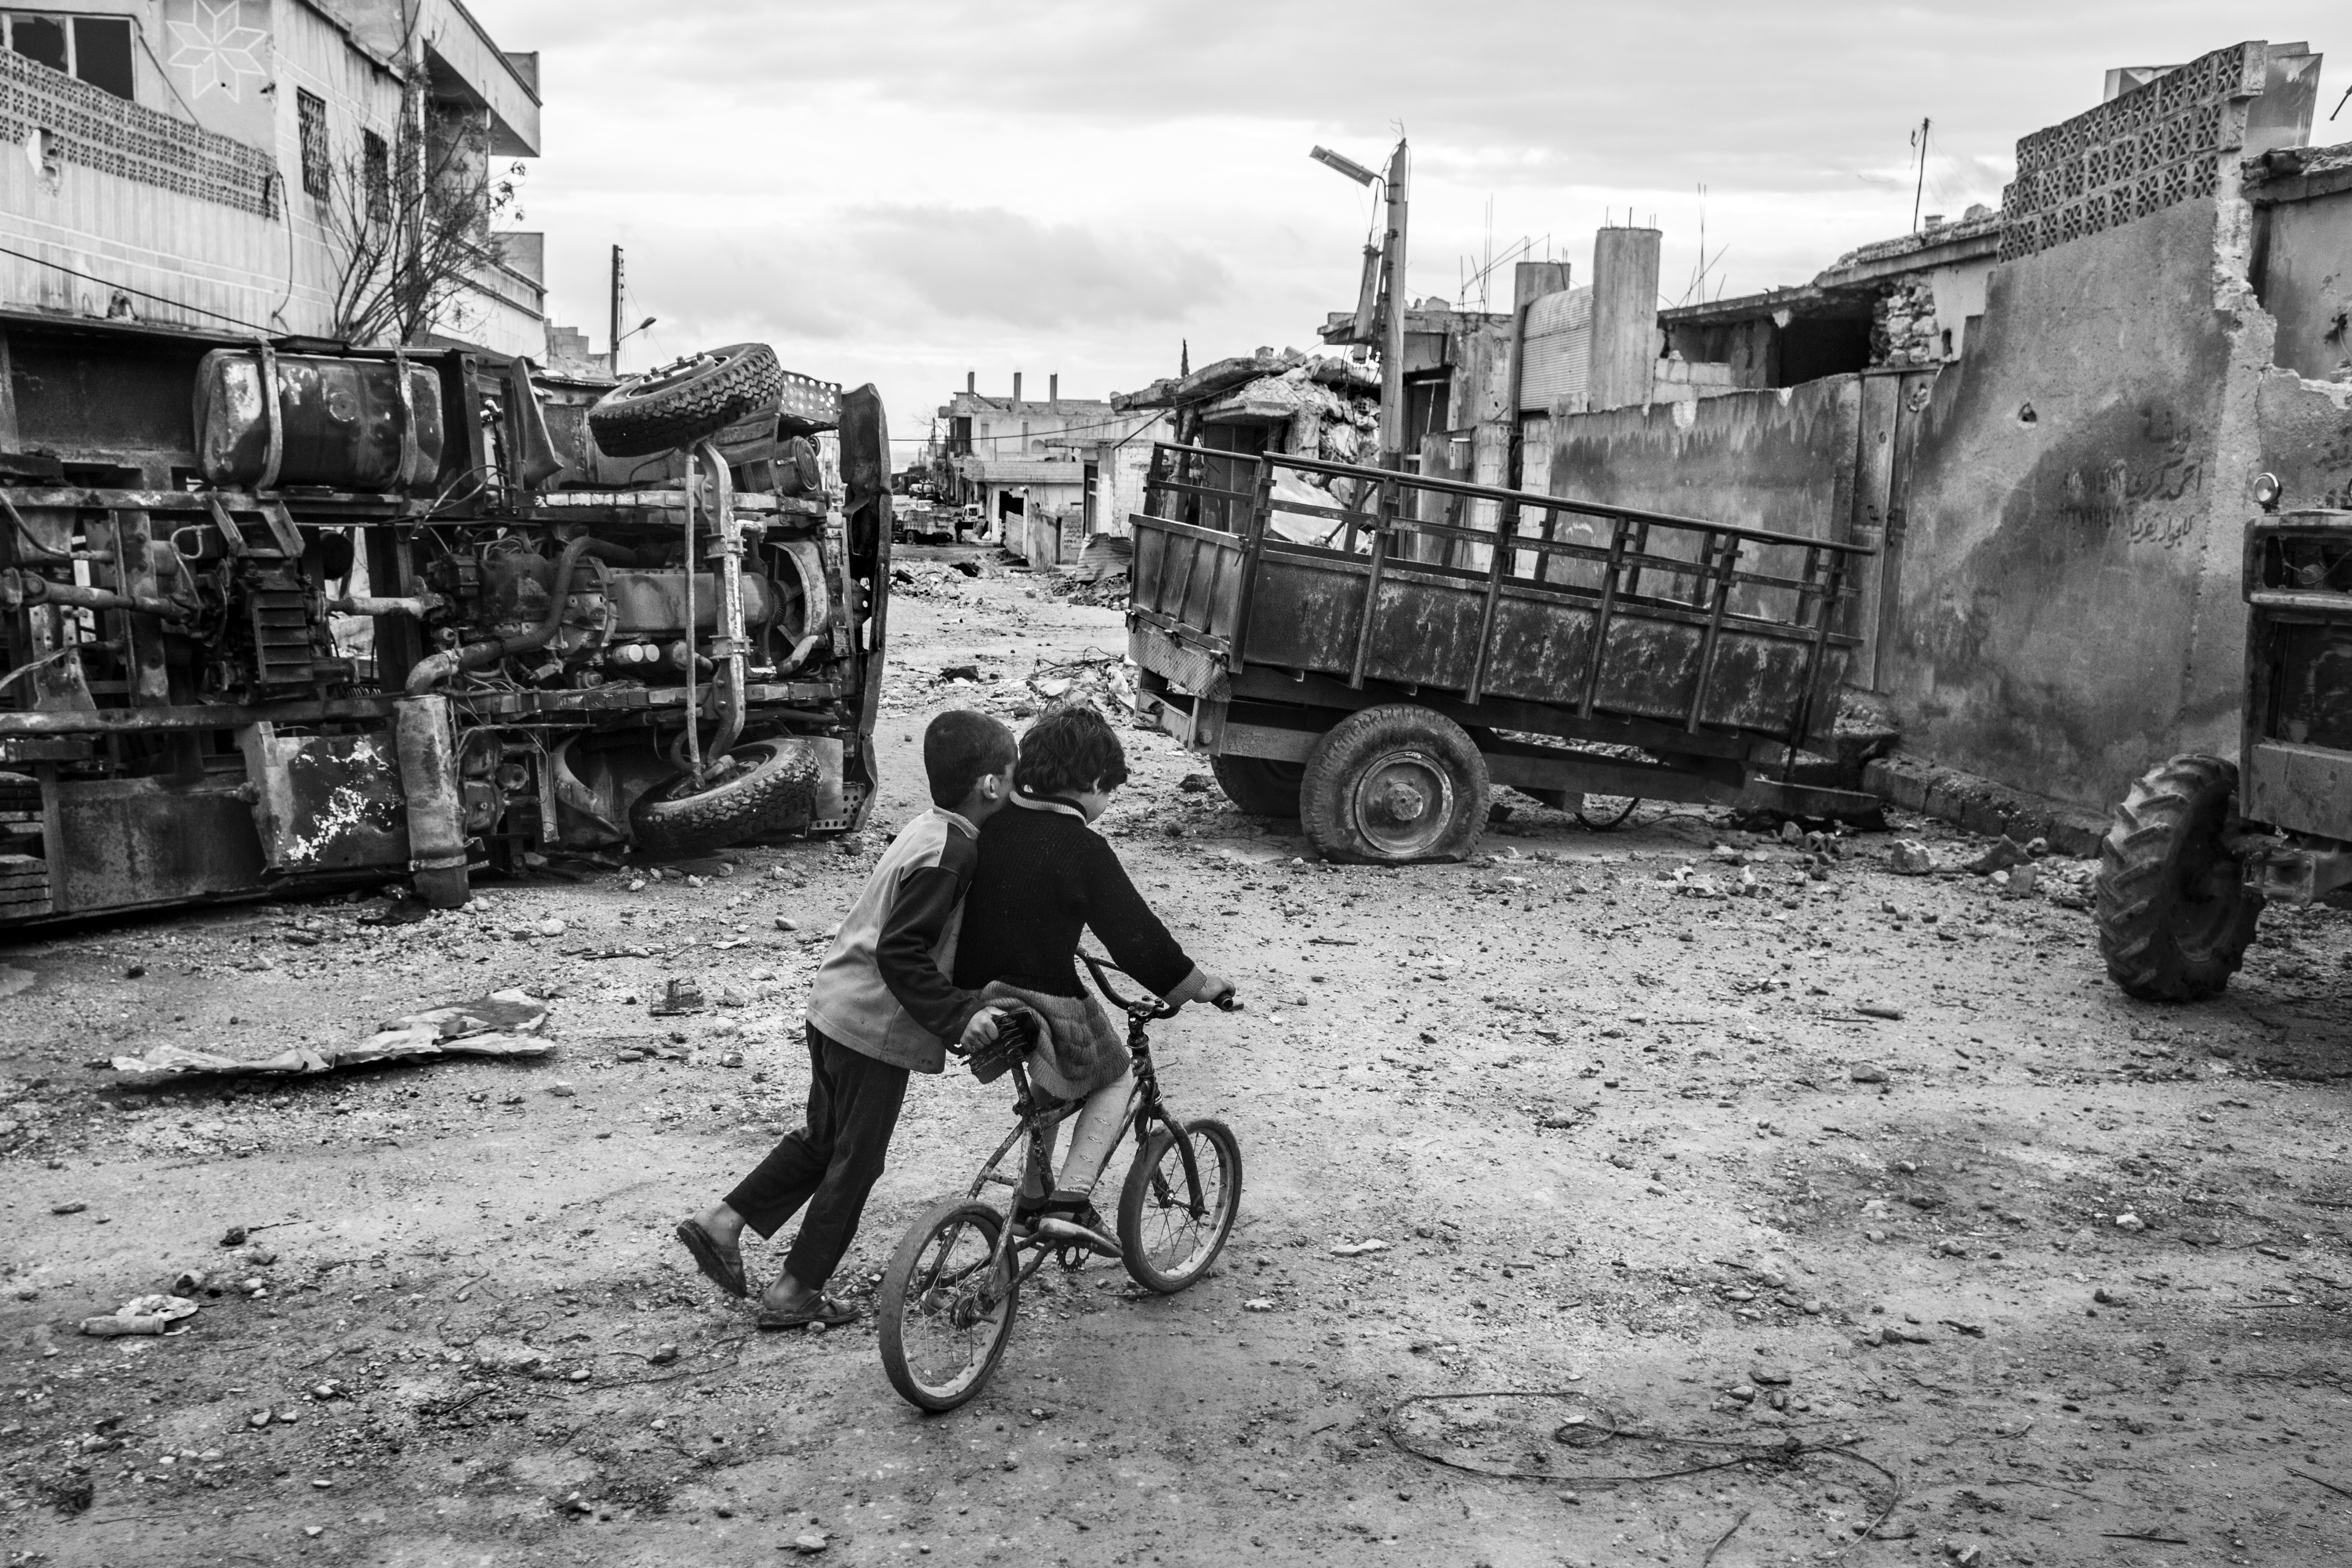 Children play in a street of Kobani. Life is slowly returning to normal in the streets of devastated city which experienced 133 days of fierce fighting. Kobani / Syria, March 22, 2015.